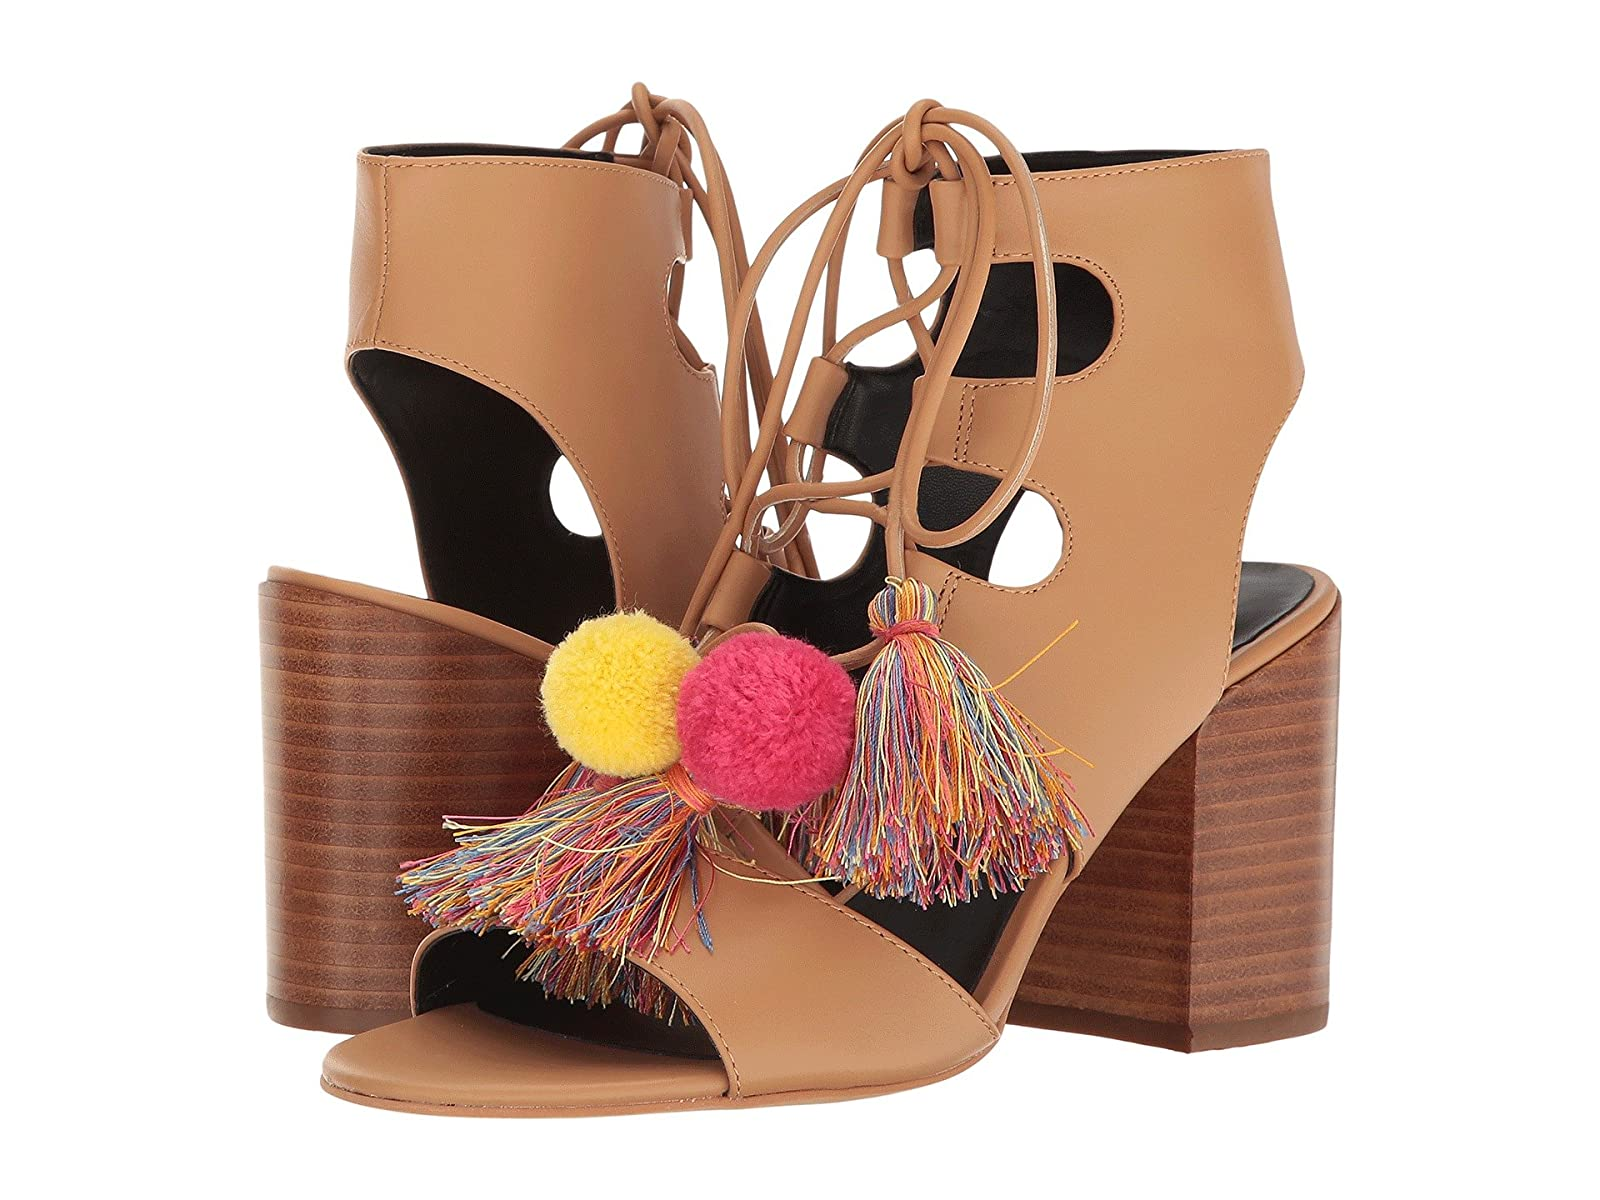 Rebecca Minkoff CalissaCheap and distinctive eye-catching shoes